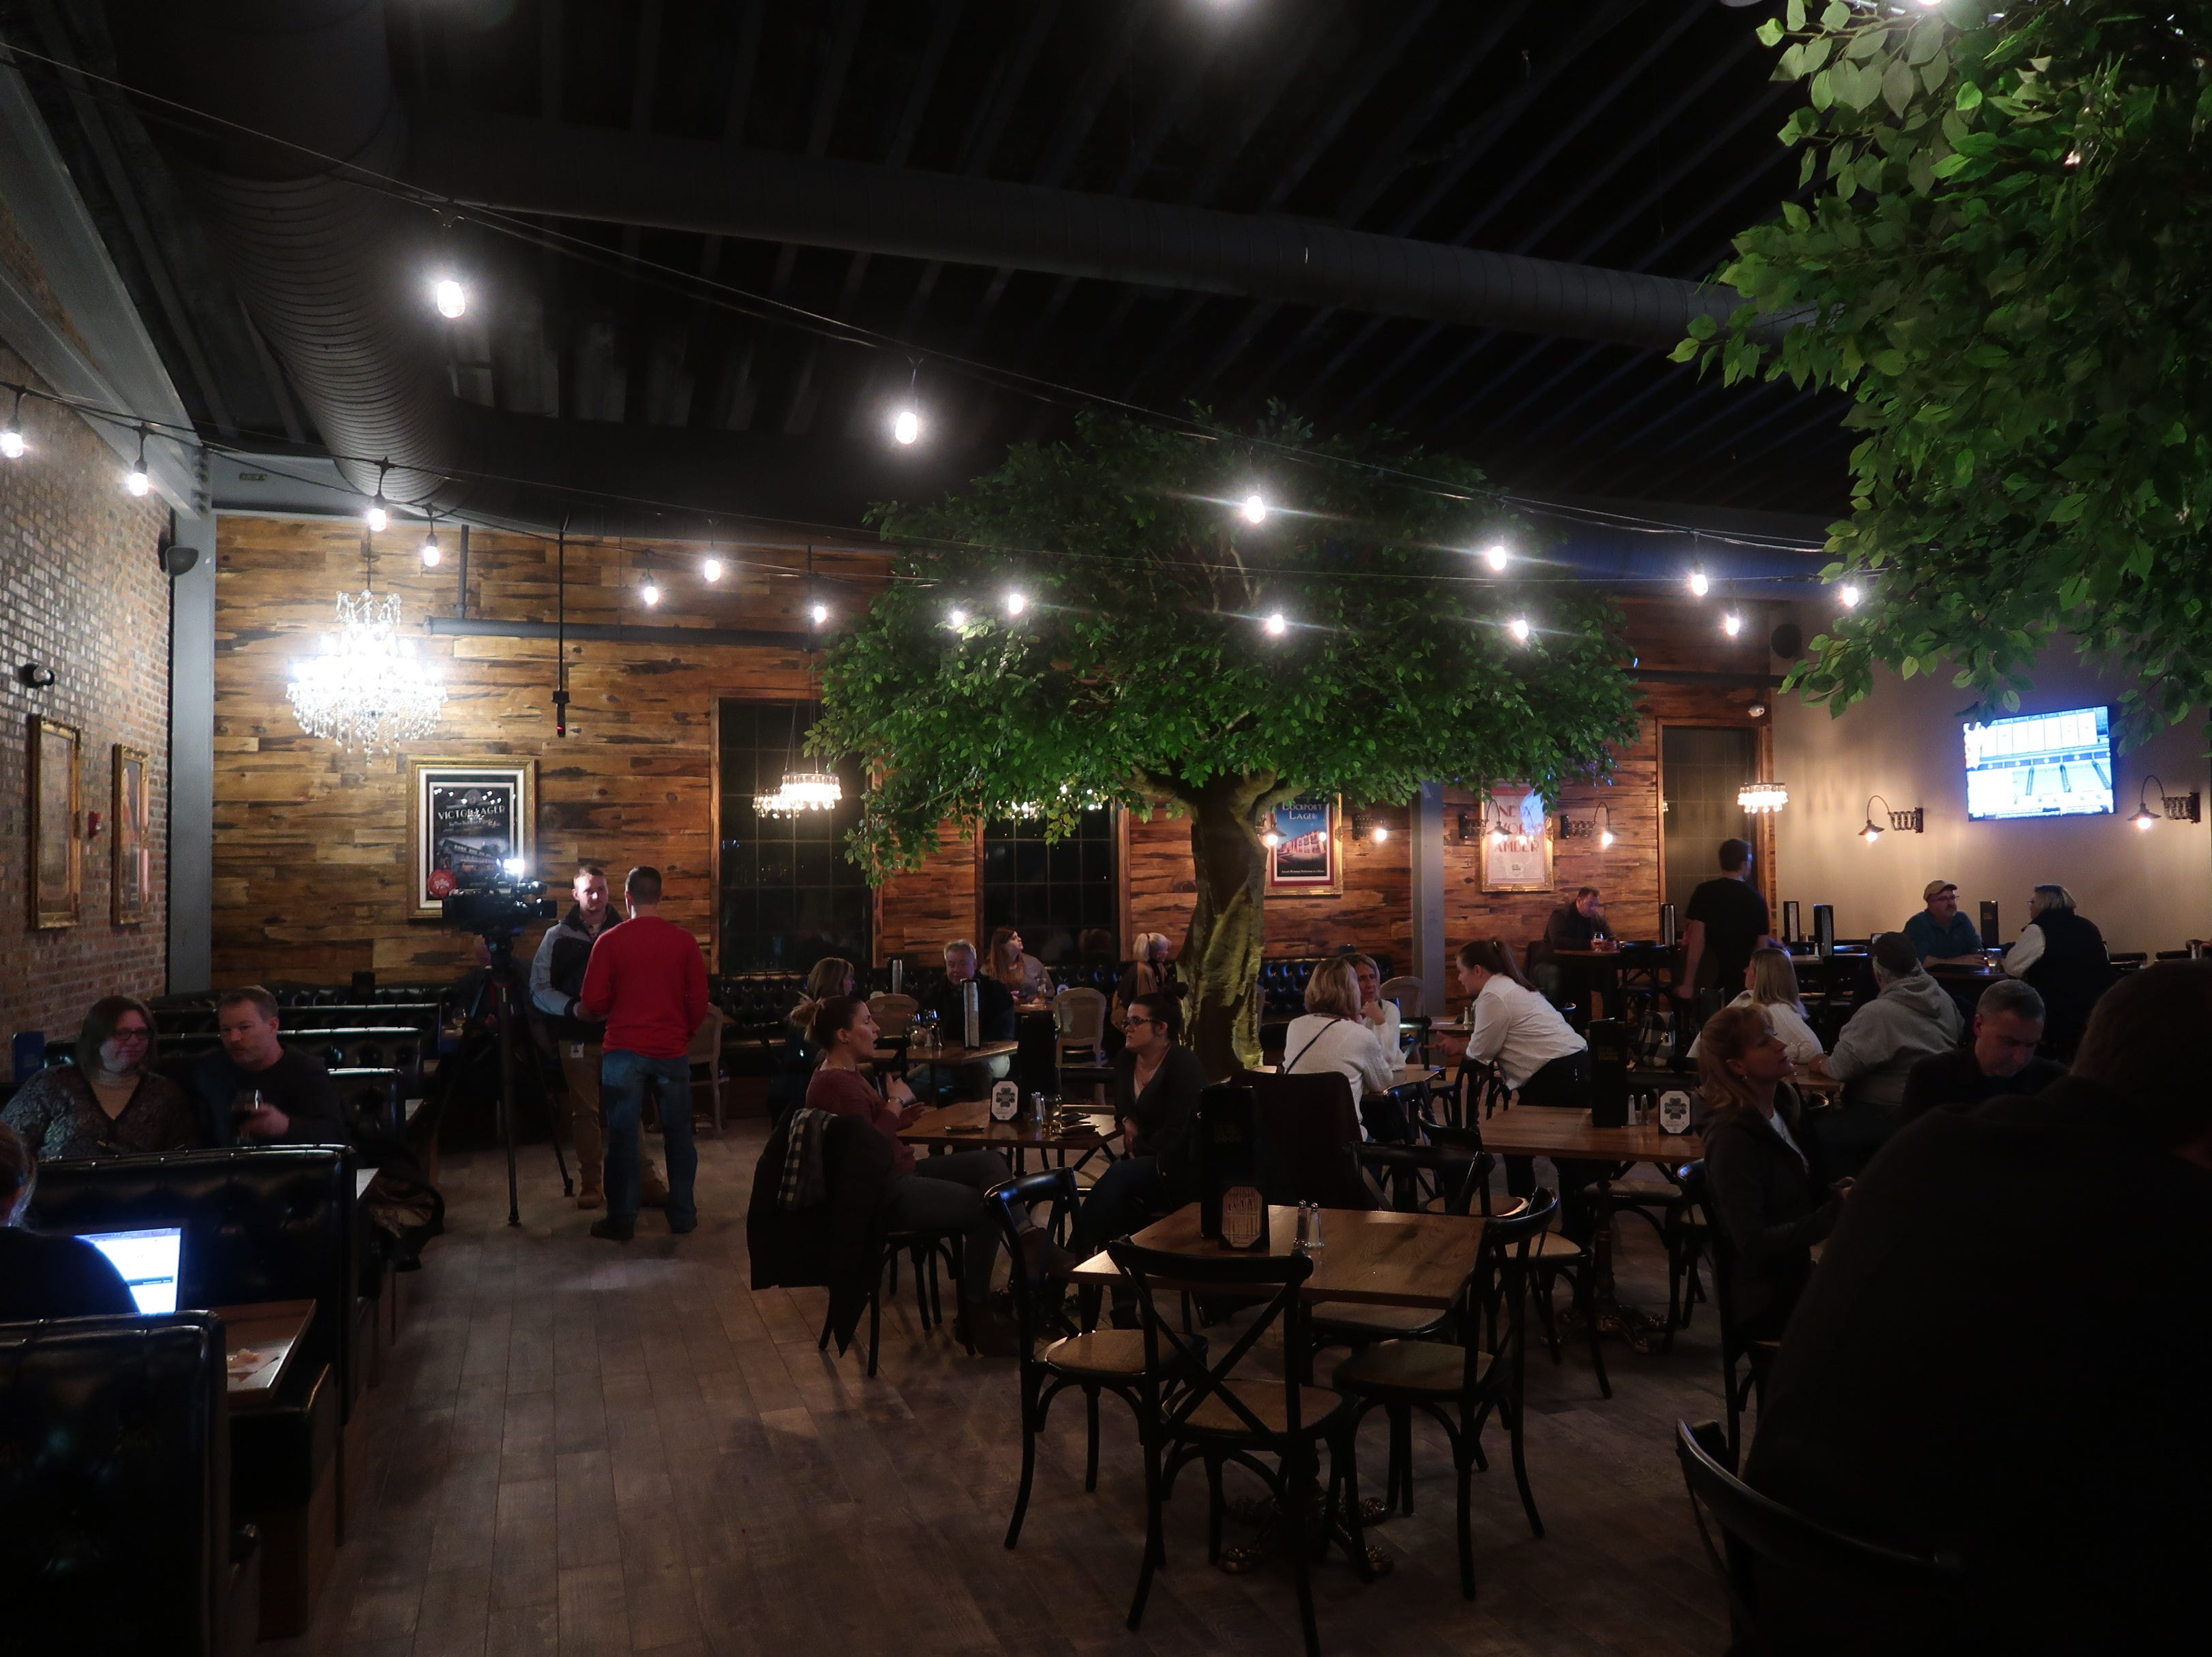 The main dining area at the New York Beer Project in Victor.